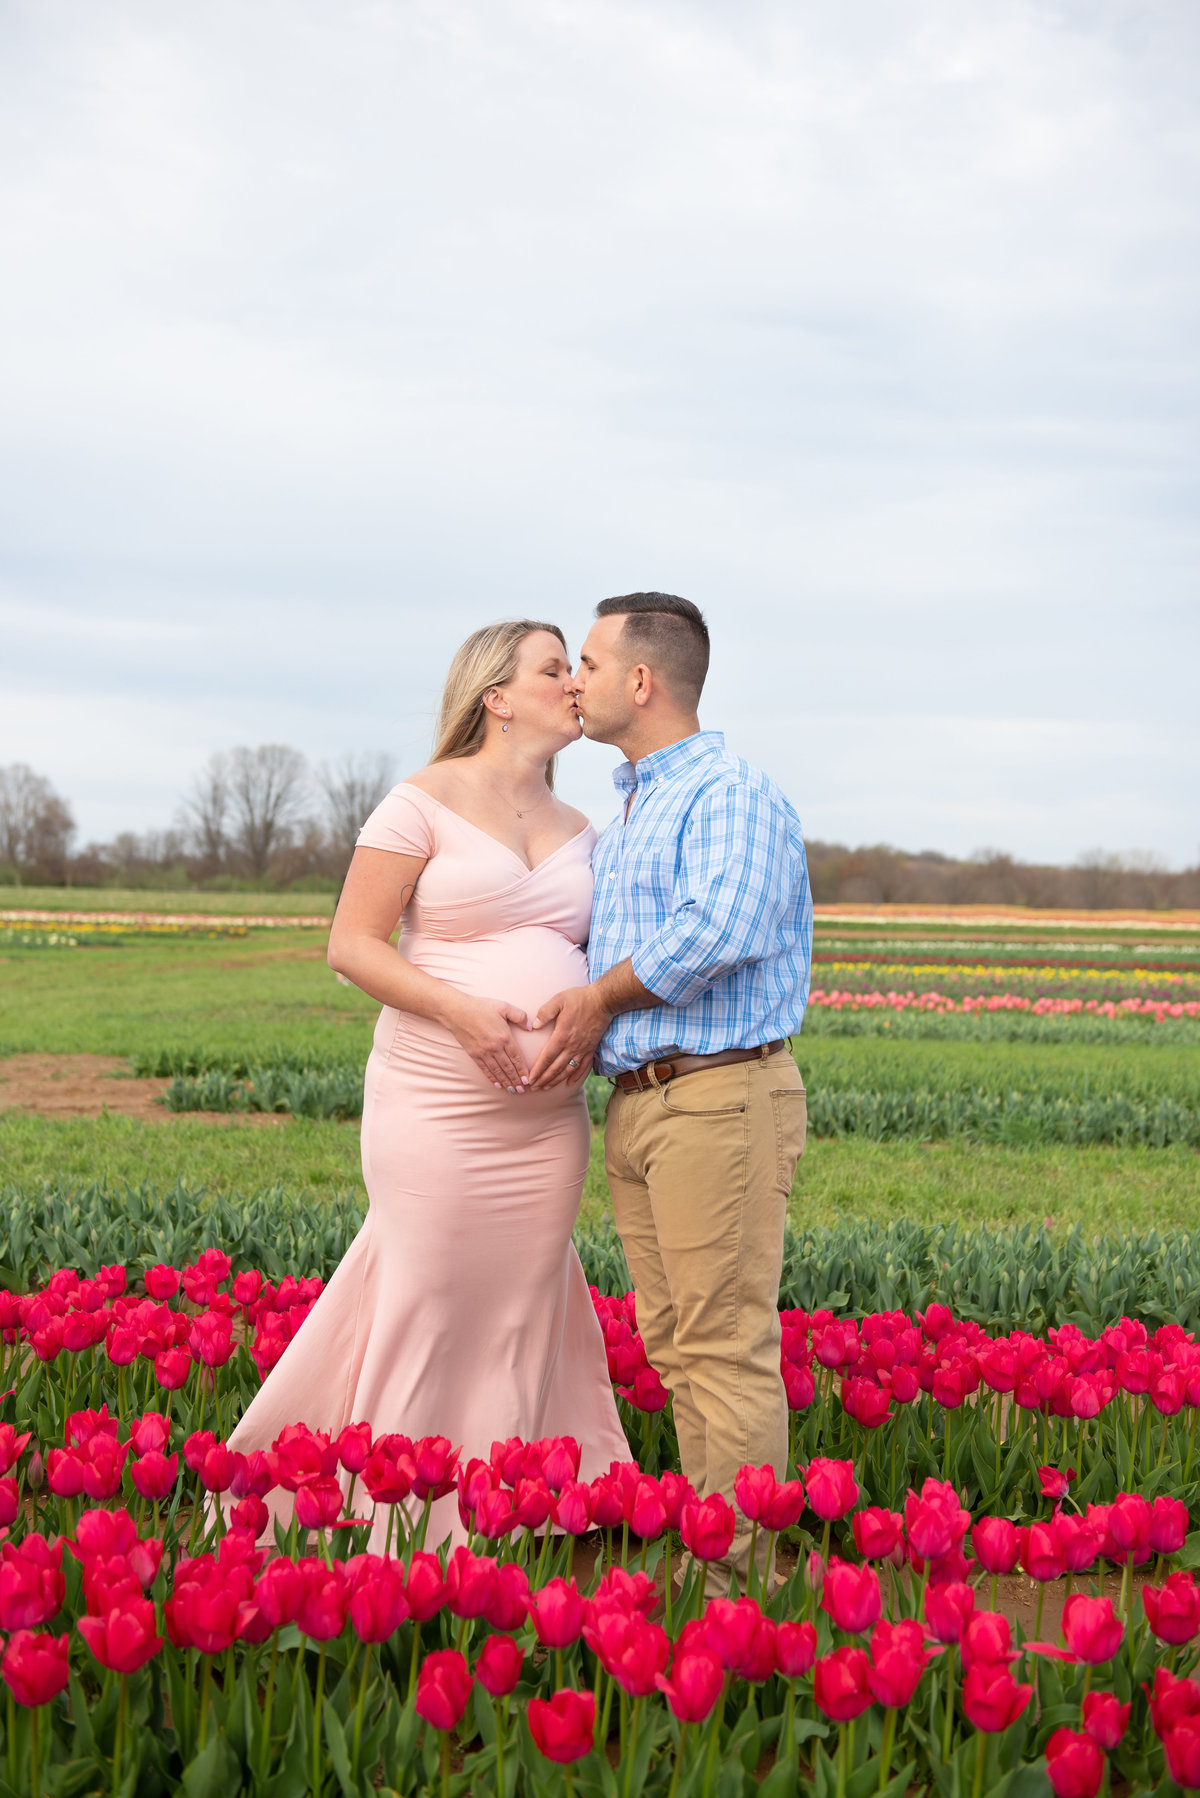 rachel-sean-spring-maternity-session-holland-ridhe-farms-imagery-by-marianne-2019-59